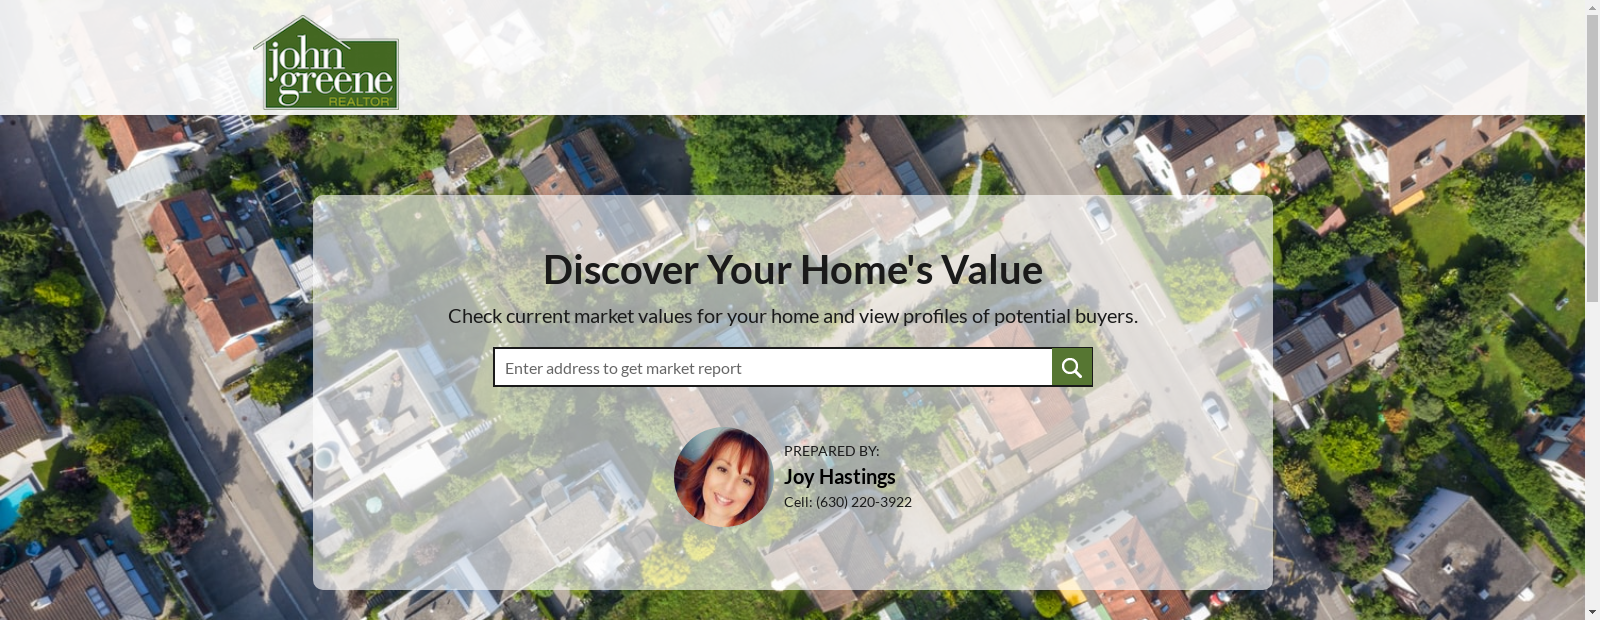 home valuation image